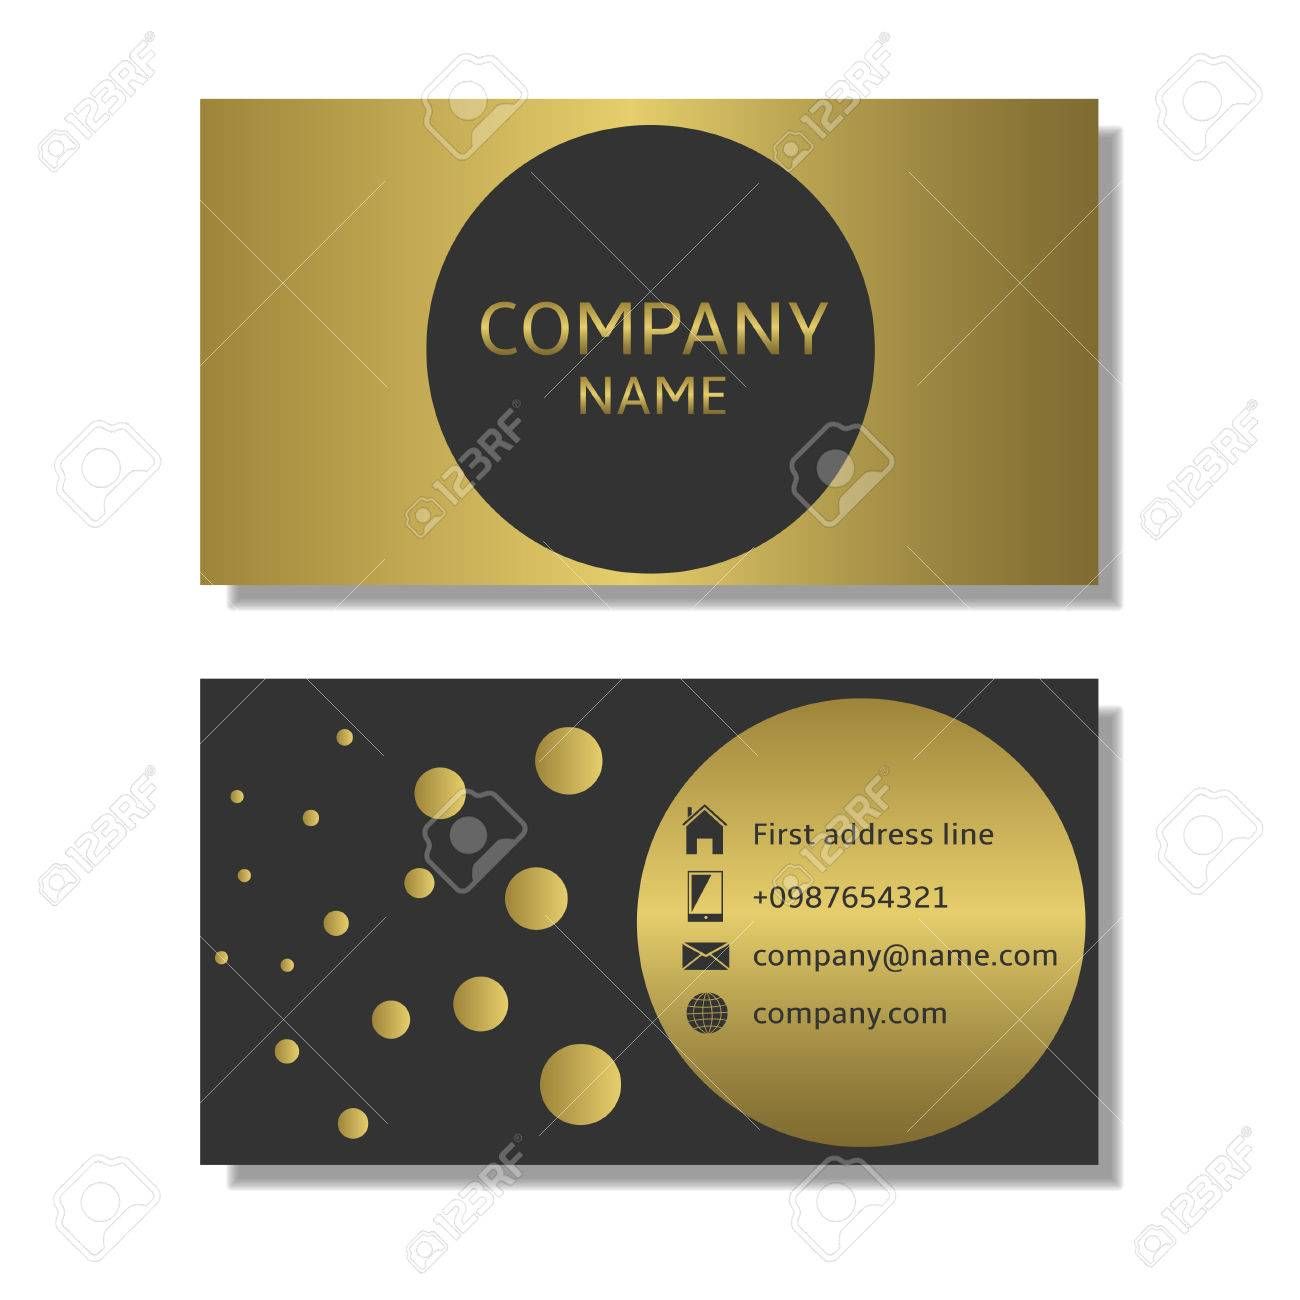 Business card template golden business card with place for company business card template golden business card with place for company name stock vector 58407919 cheaphphosting Image collections